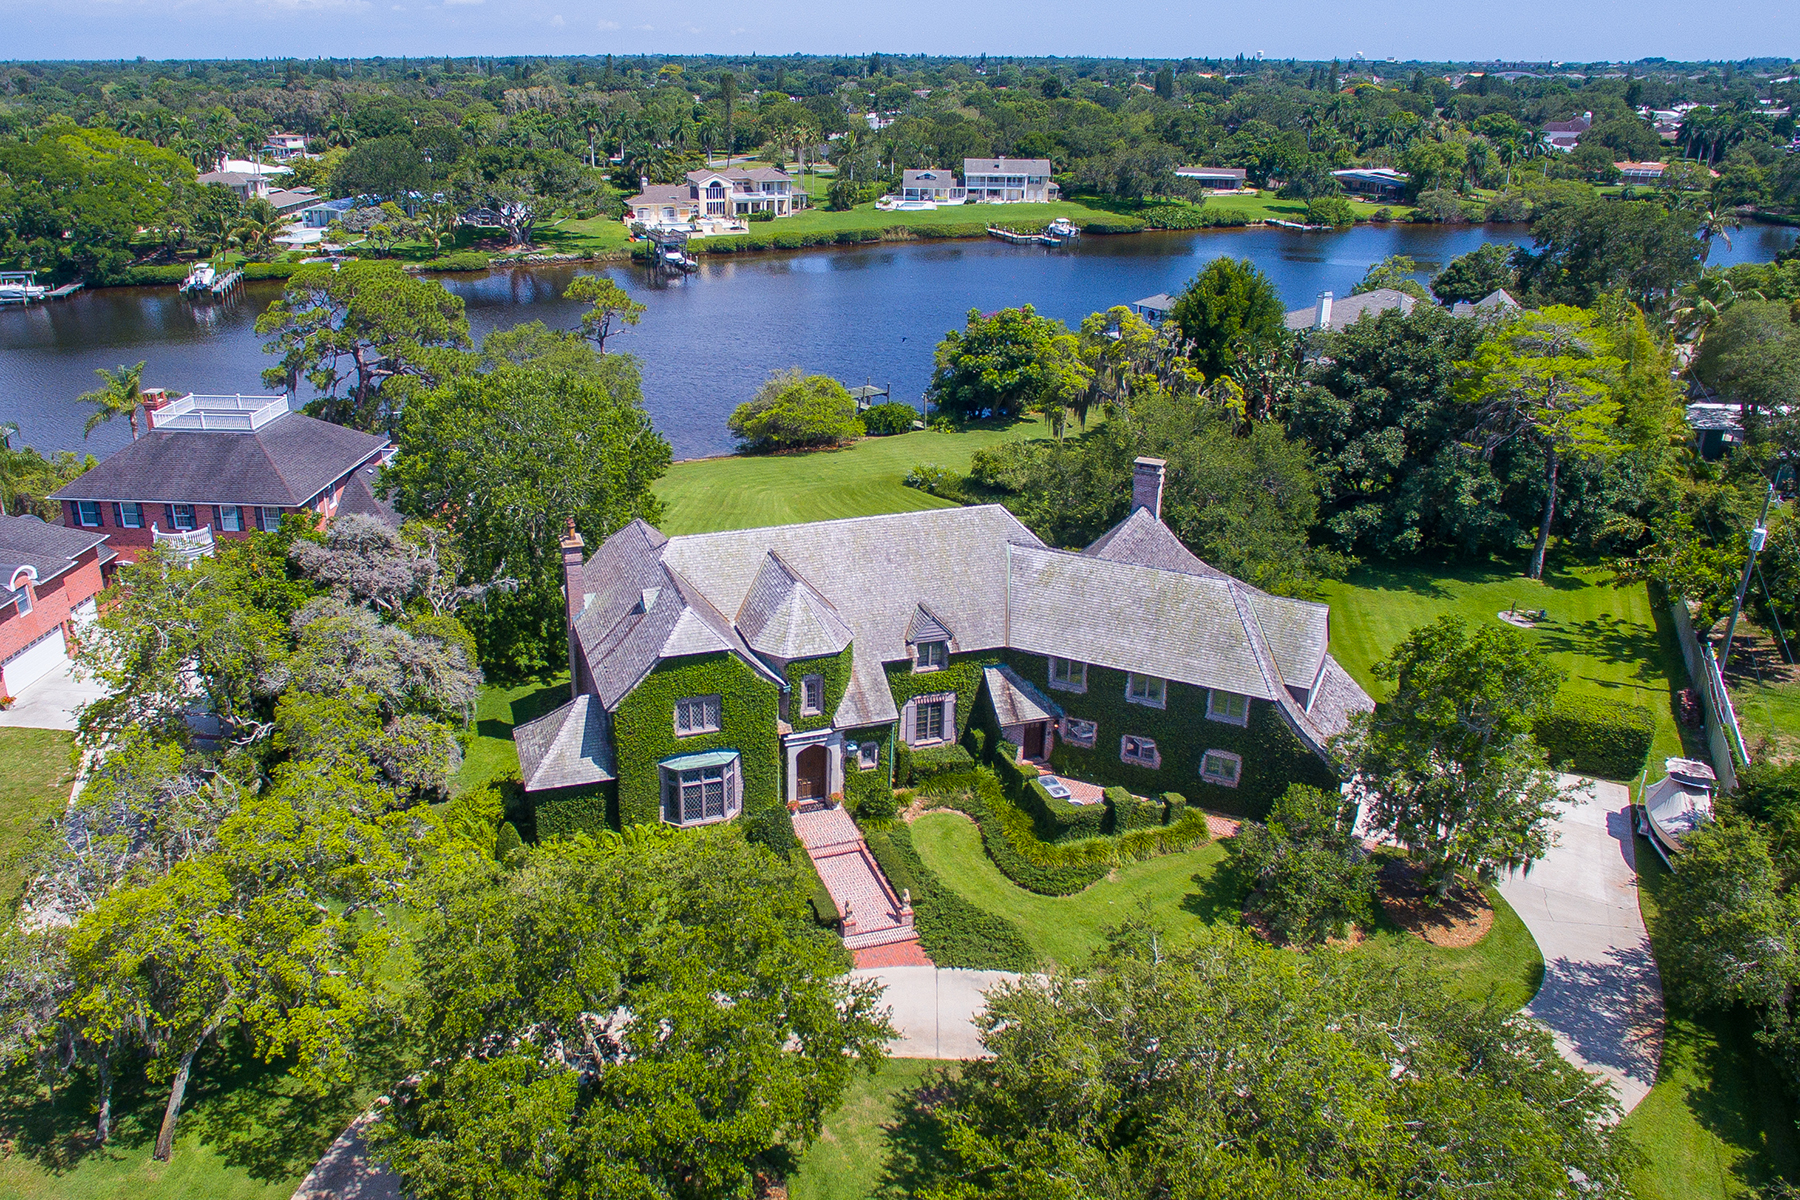 Additional photo for property listing at BAYOU BEND 1112  64th St  NW,  Bradenton, Florida 34209 United States